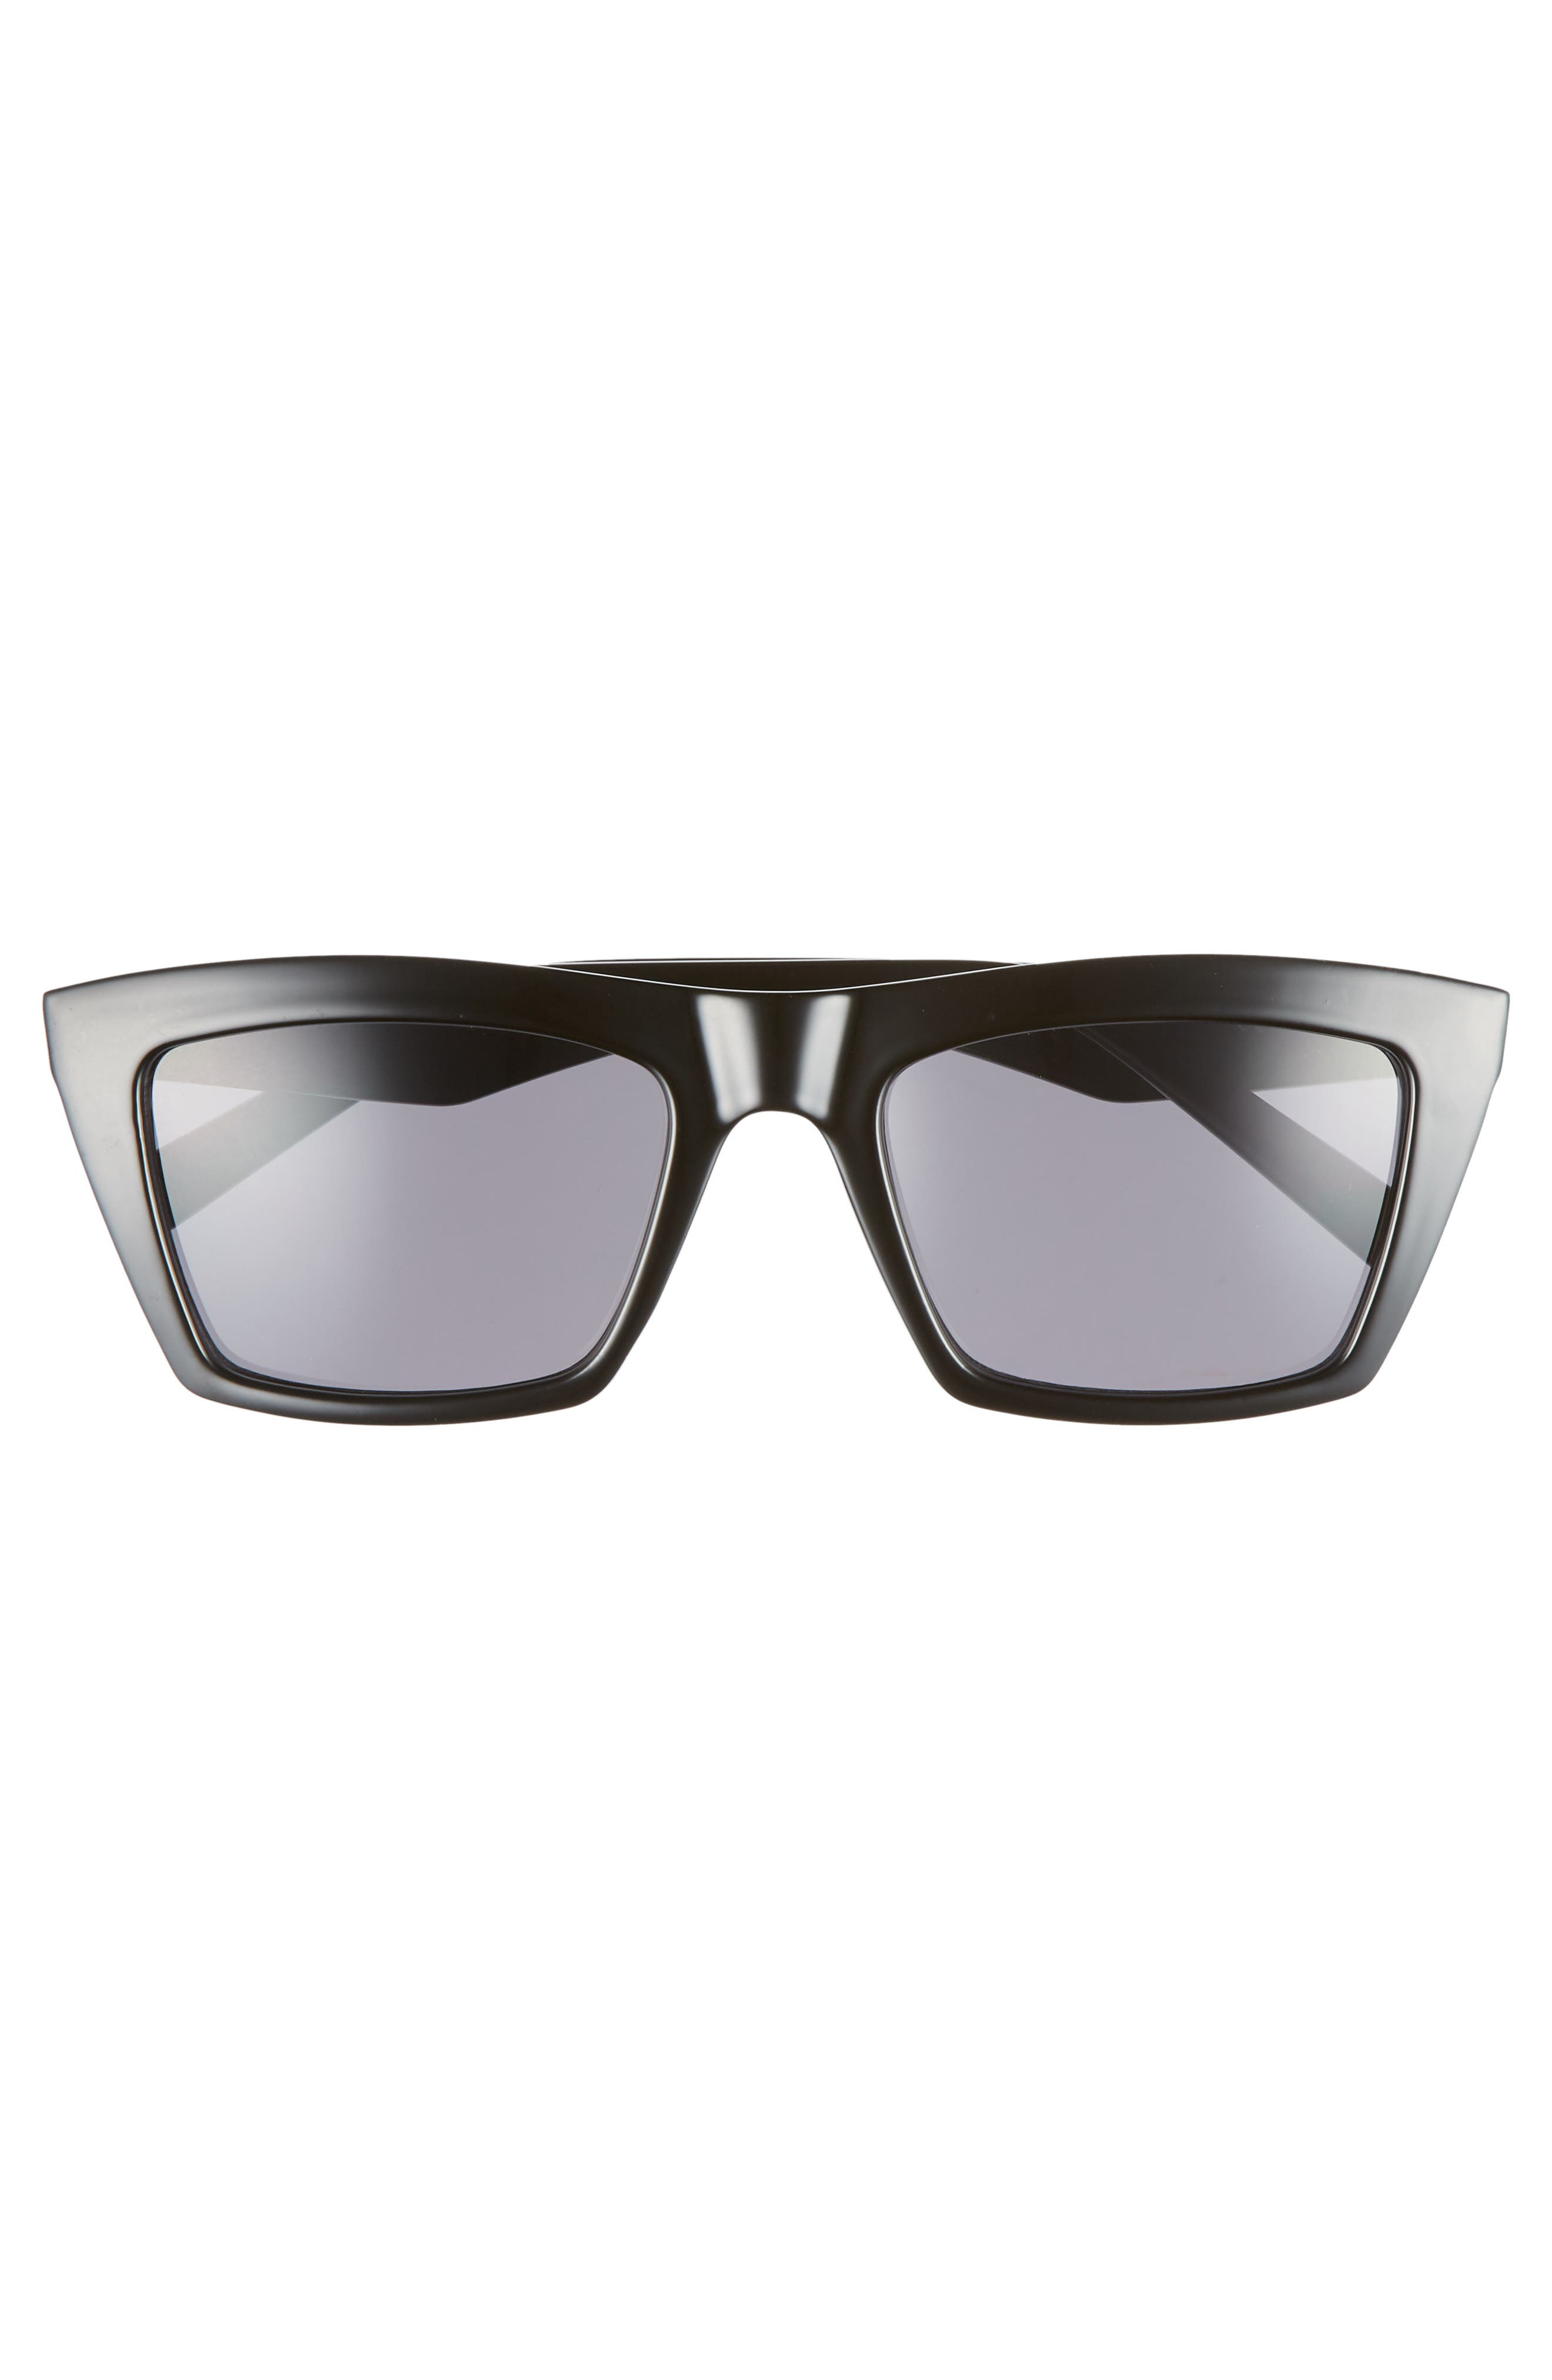 Kamilla 53mm Square Sunglasses,                             Alternate thumbnail 3, color,                             BLACK/ SOLID SMOKE